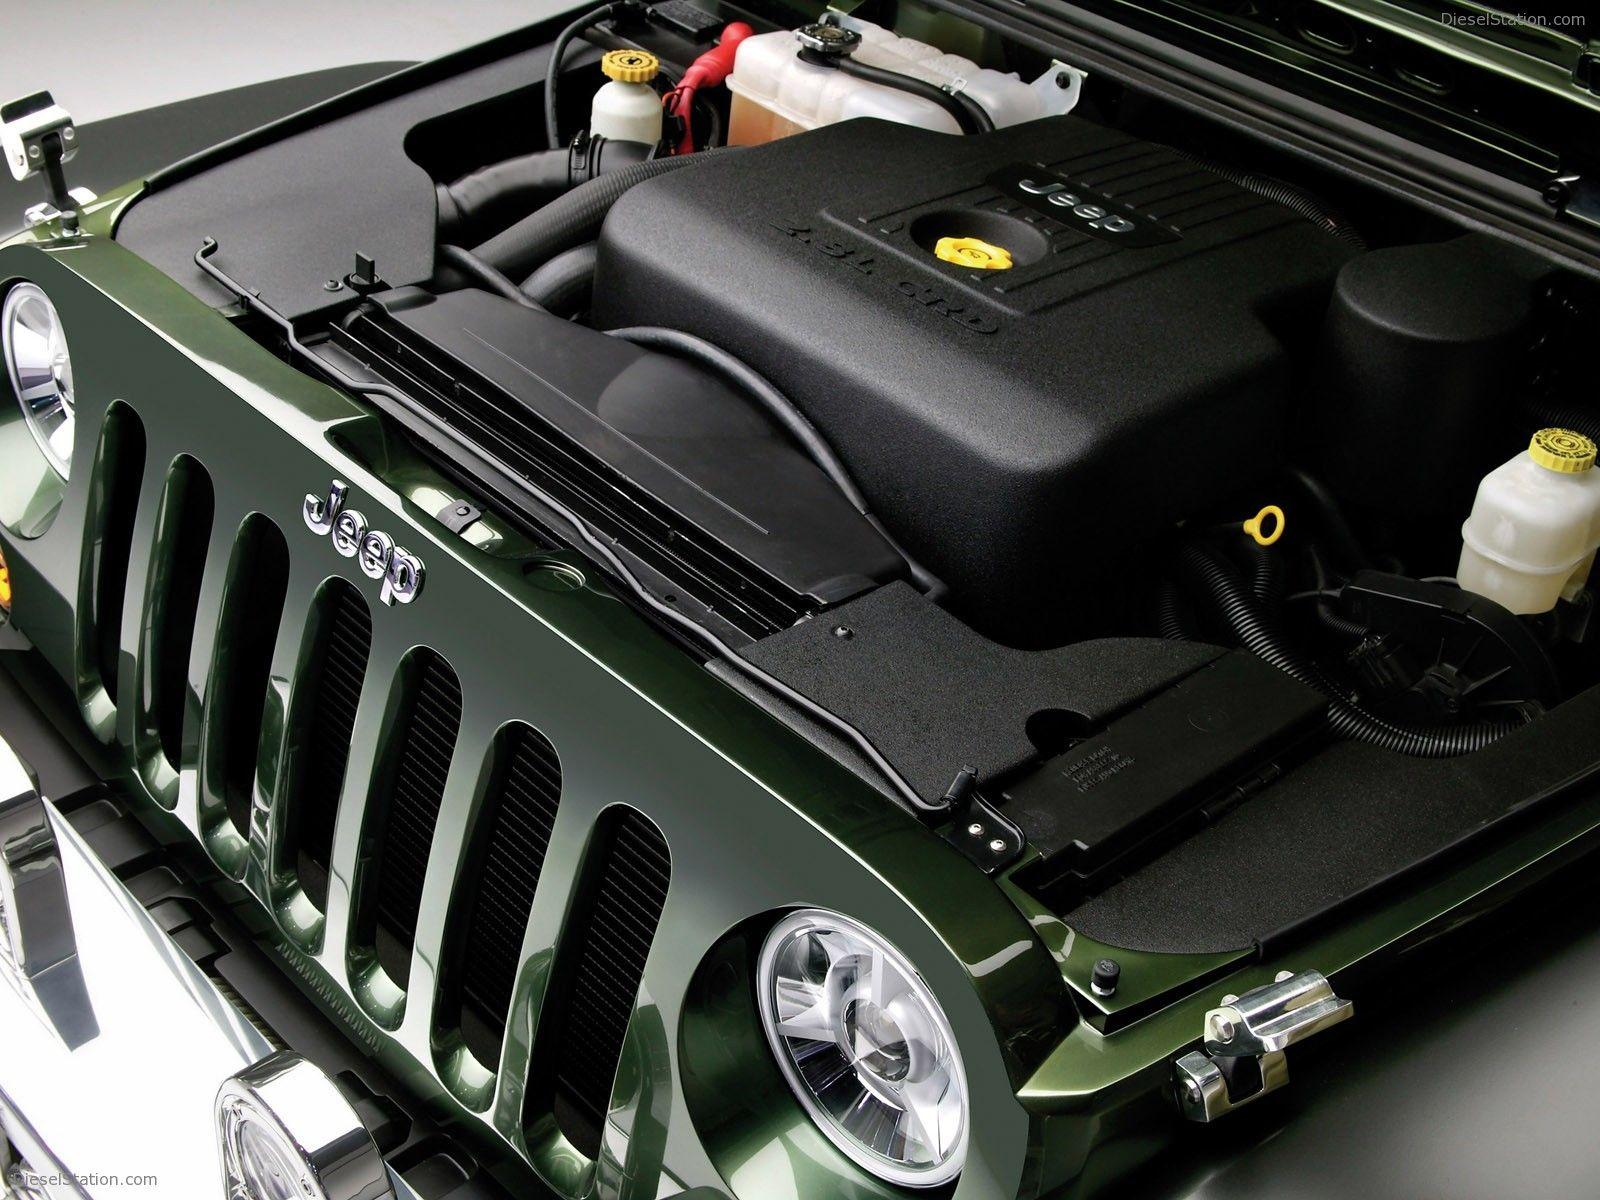 Jeep Gladiator Concept Exotic Car Wallpapers #008 of 8 : Diesel Station